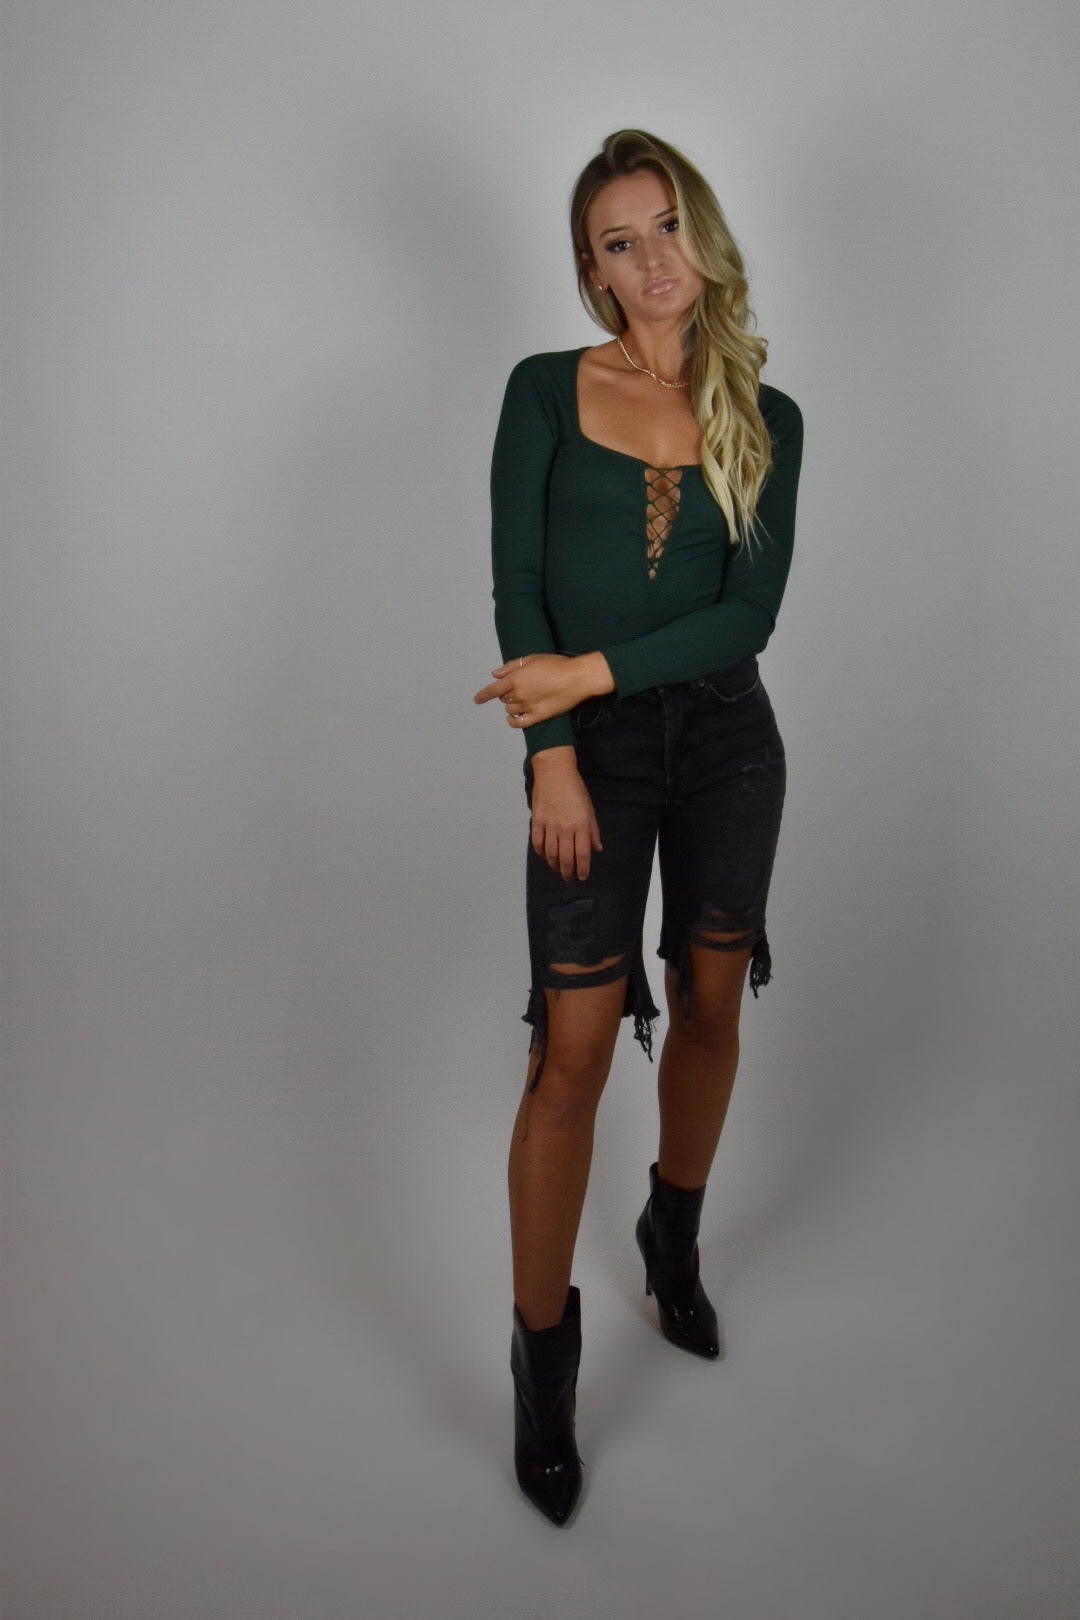 Emerald Green Crisscross Bodysuit